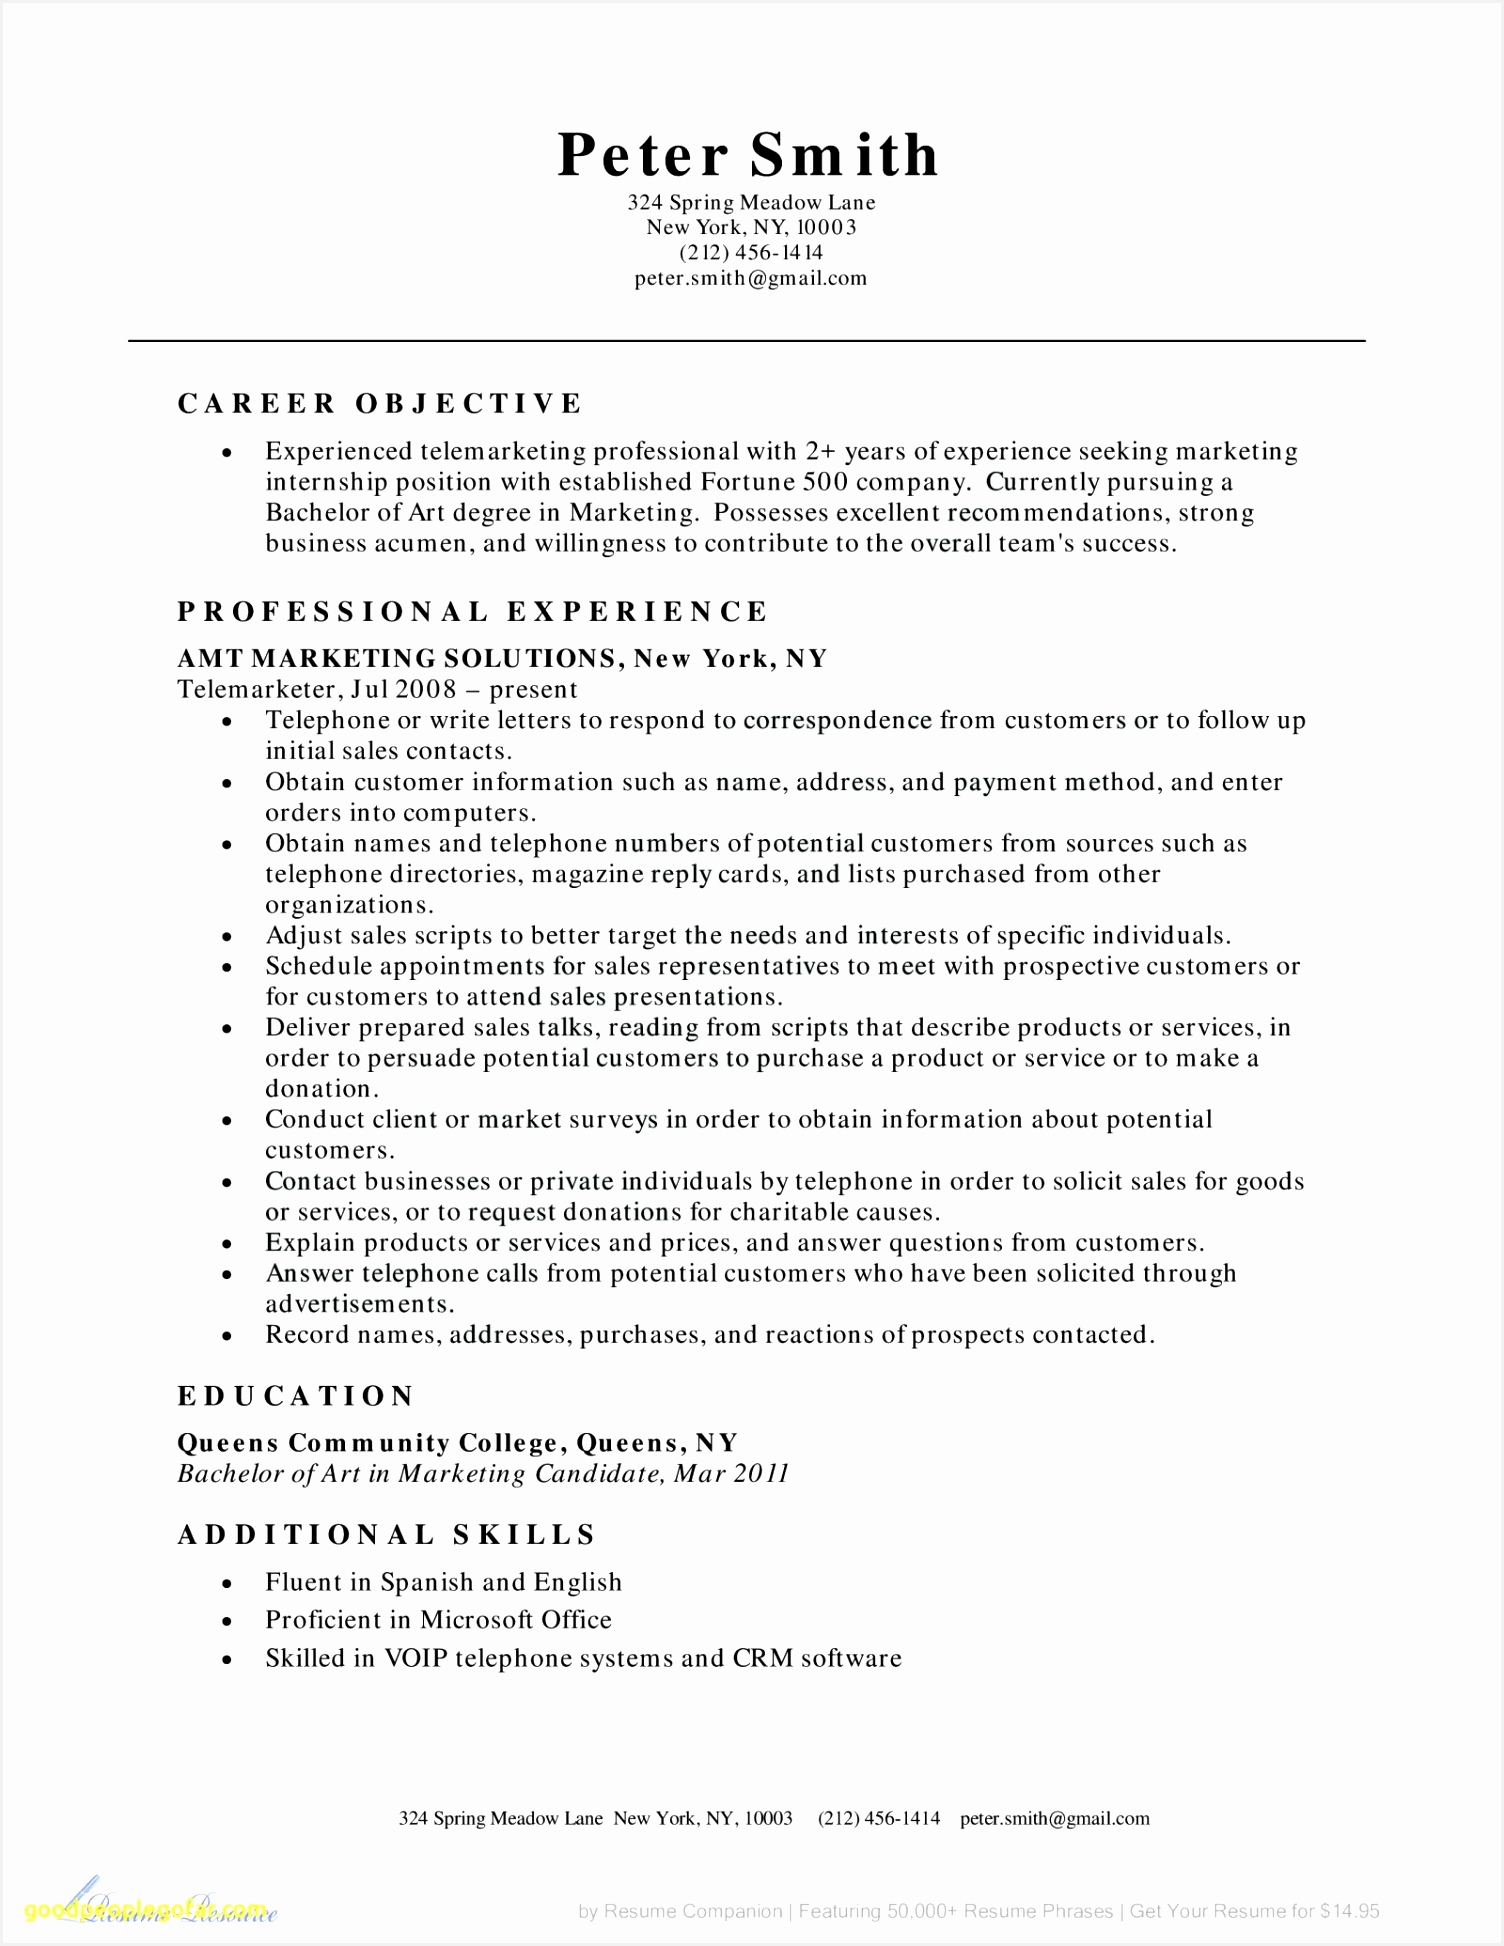 Sample Resumes for Lawyers X9nvy Elegant Resume Examples for A Lawyer Awesome Template Fresh E Cv Download19461504